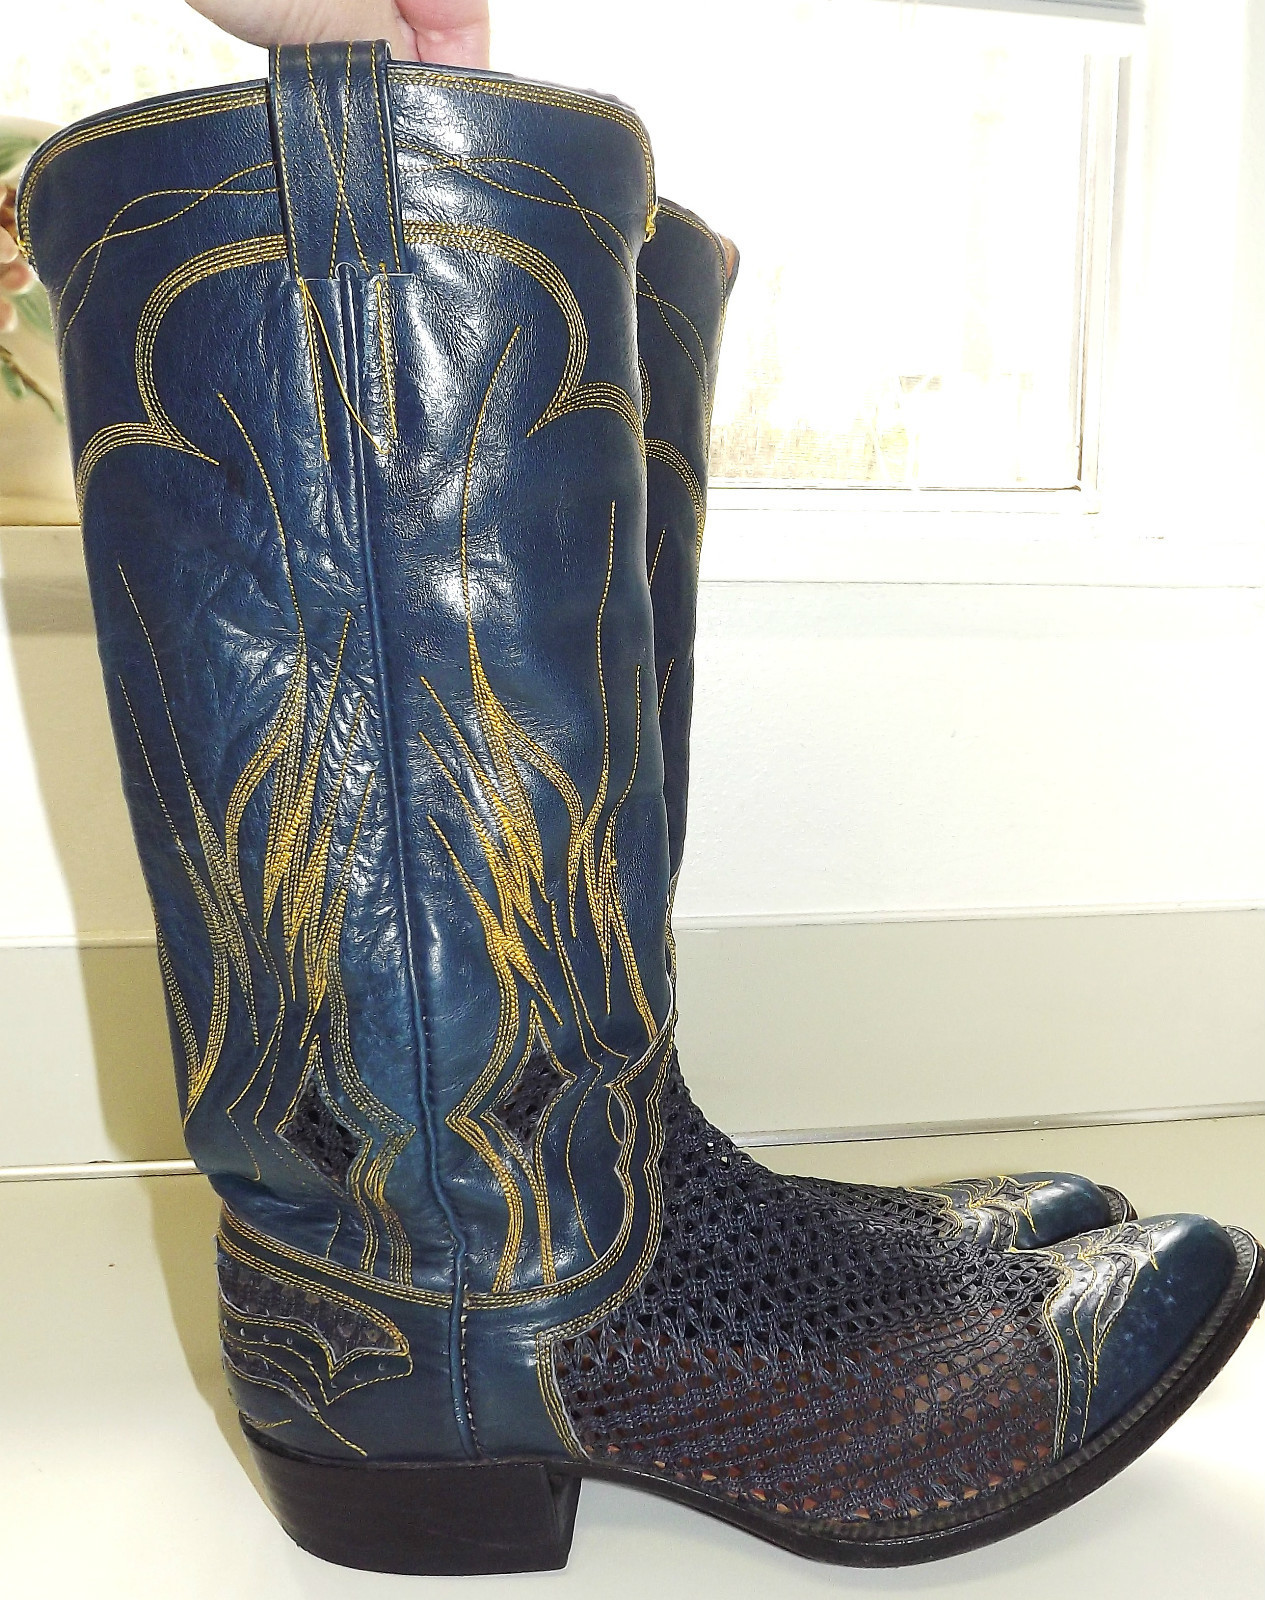 Amazing Cowboy Boots  Celebrities Who Wear Use Or Own Ash Studded Cowboy